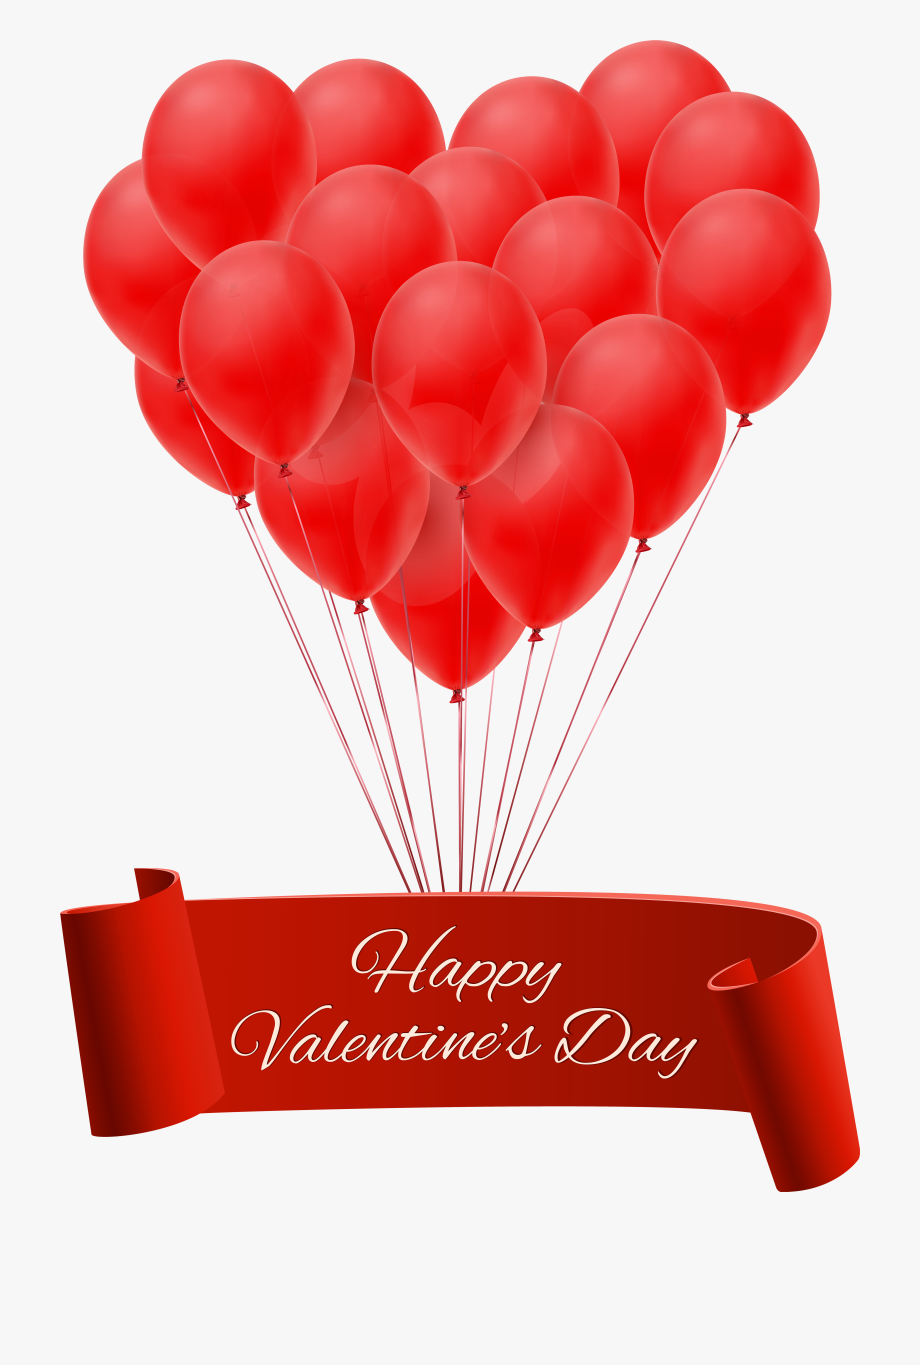 Happy Valentine S Day Banner With Balloons.